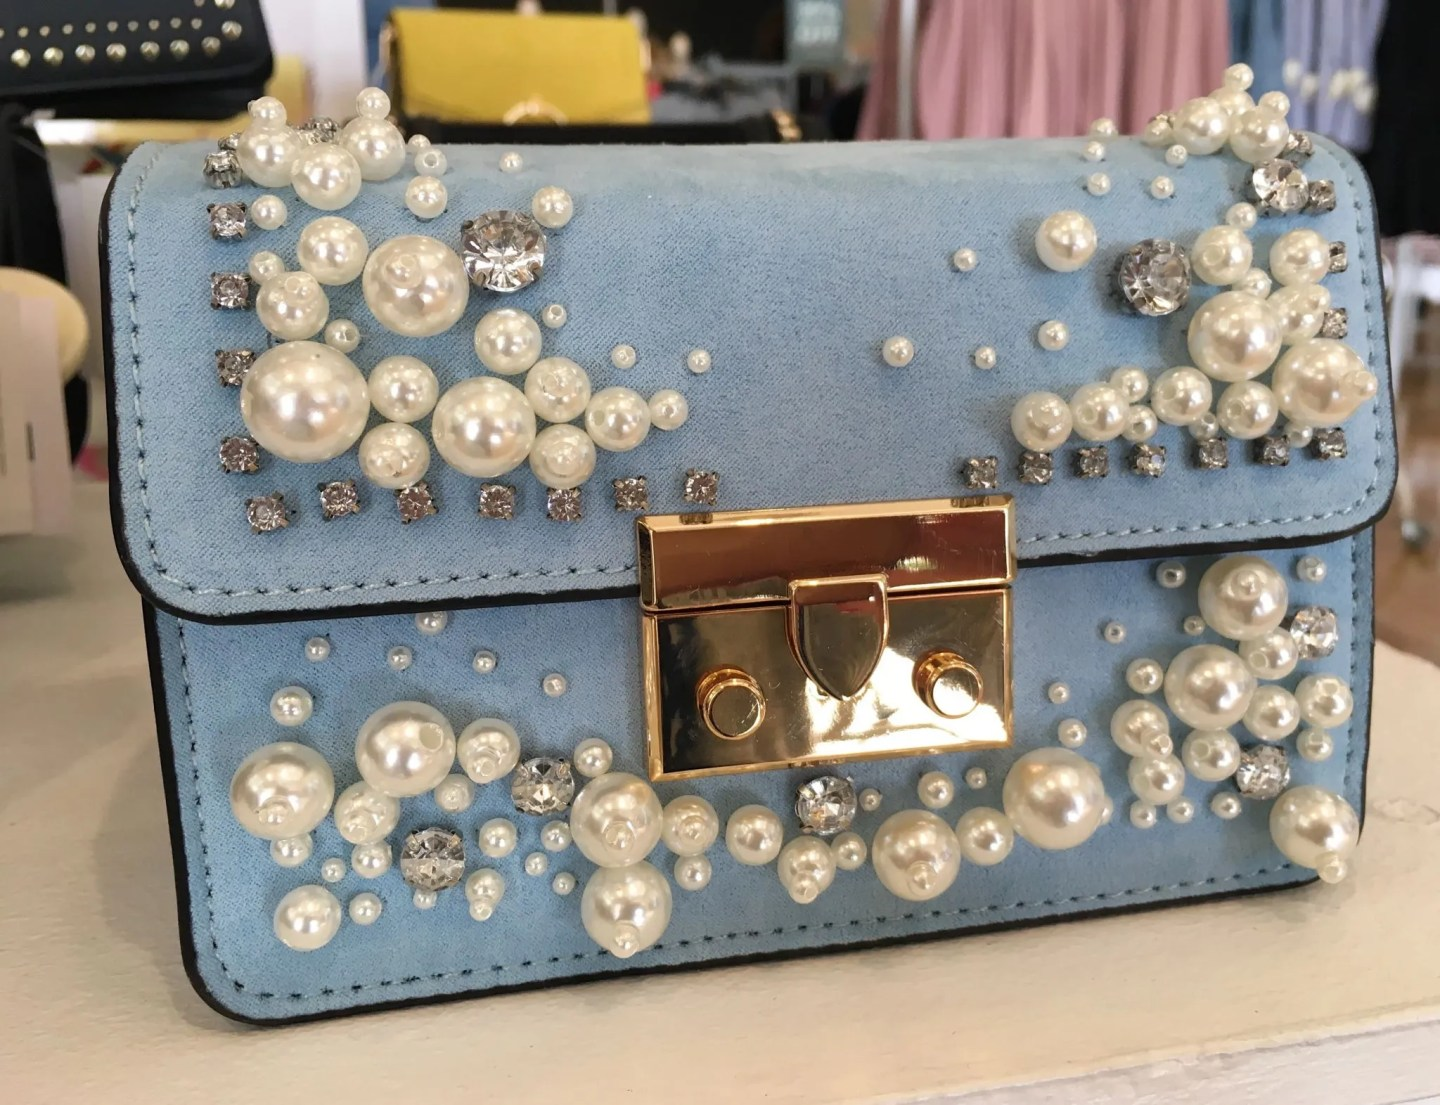 what-lizzy-loves-blie-pearl-cross-body-bag-mothers-day-gifts